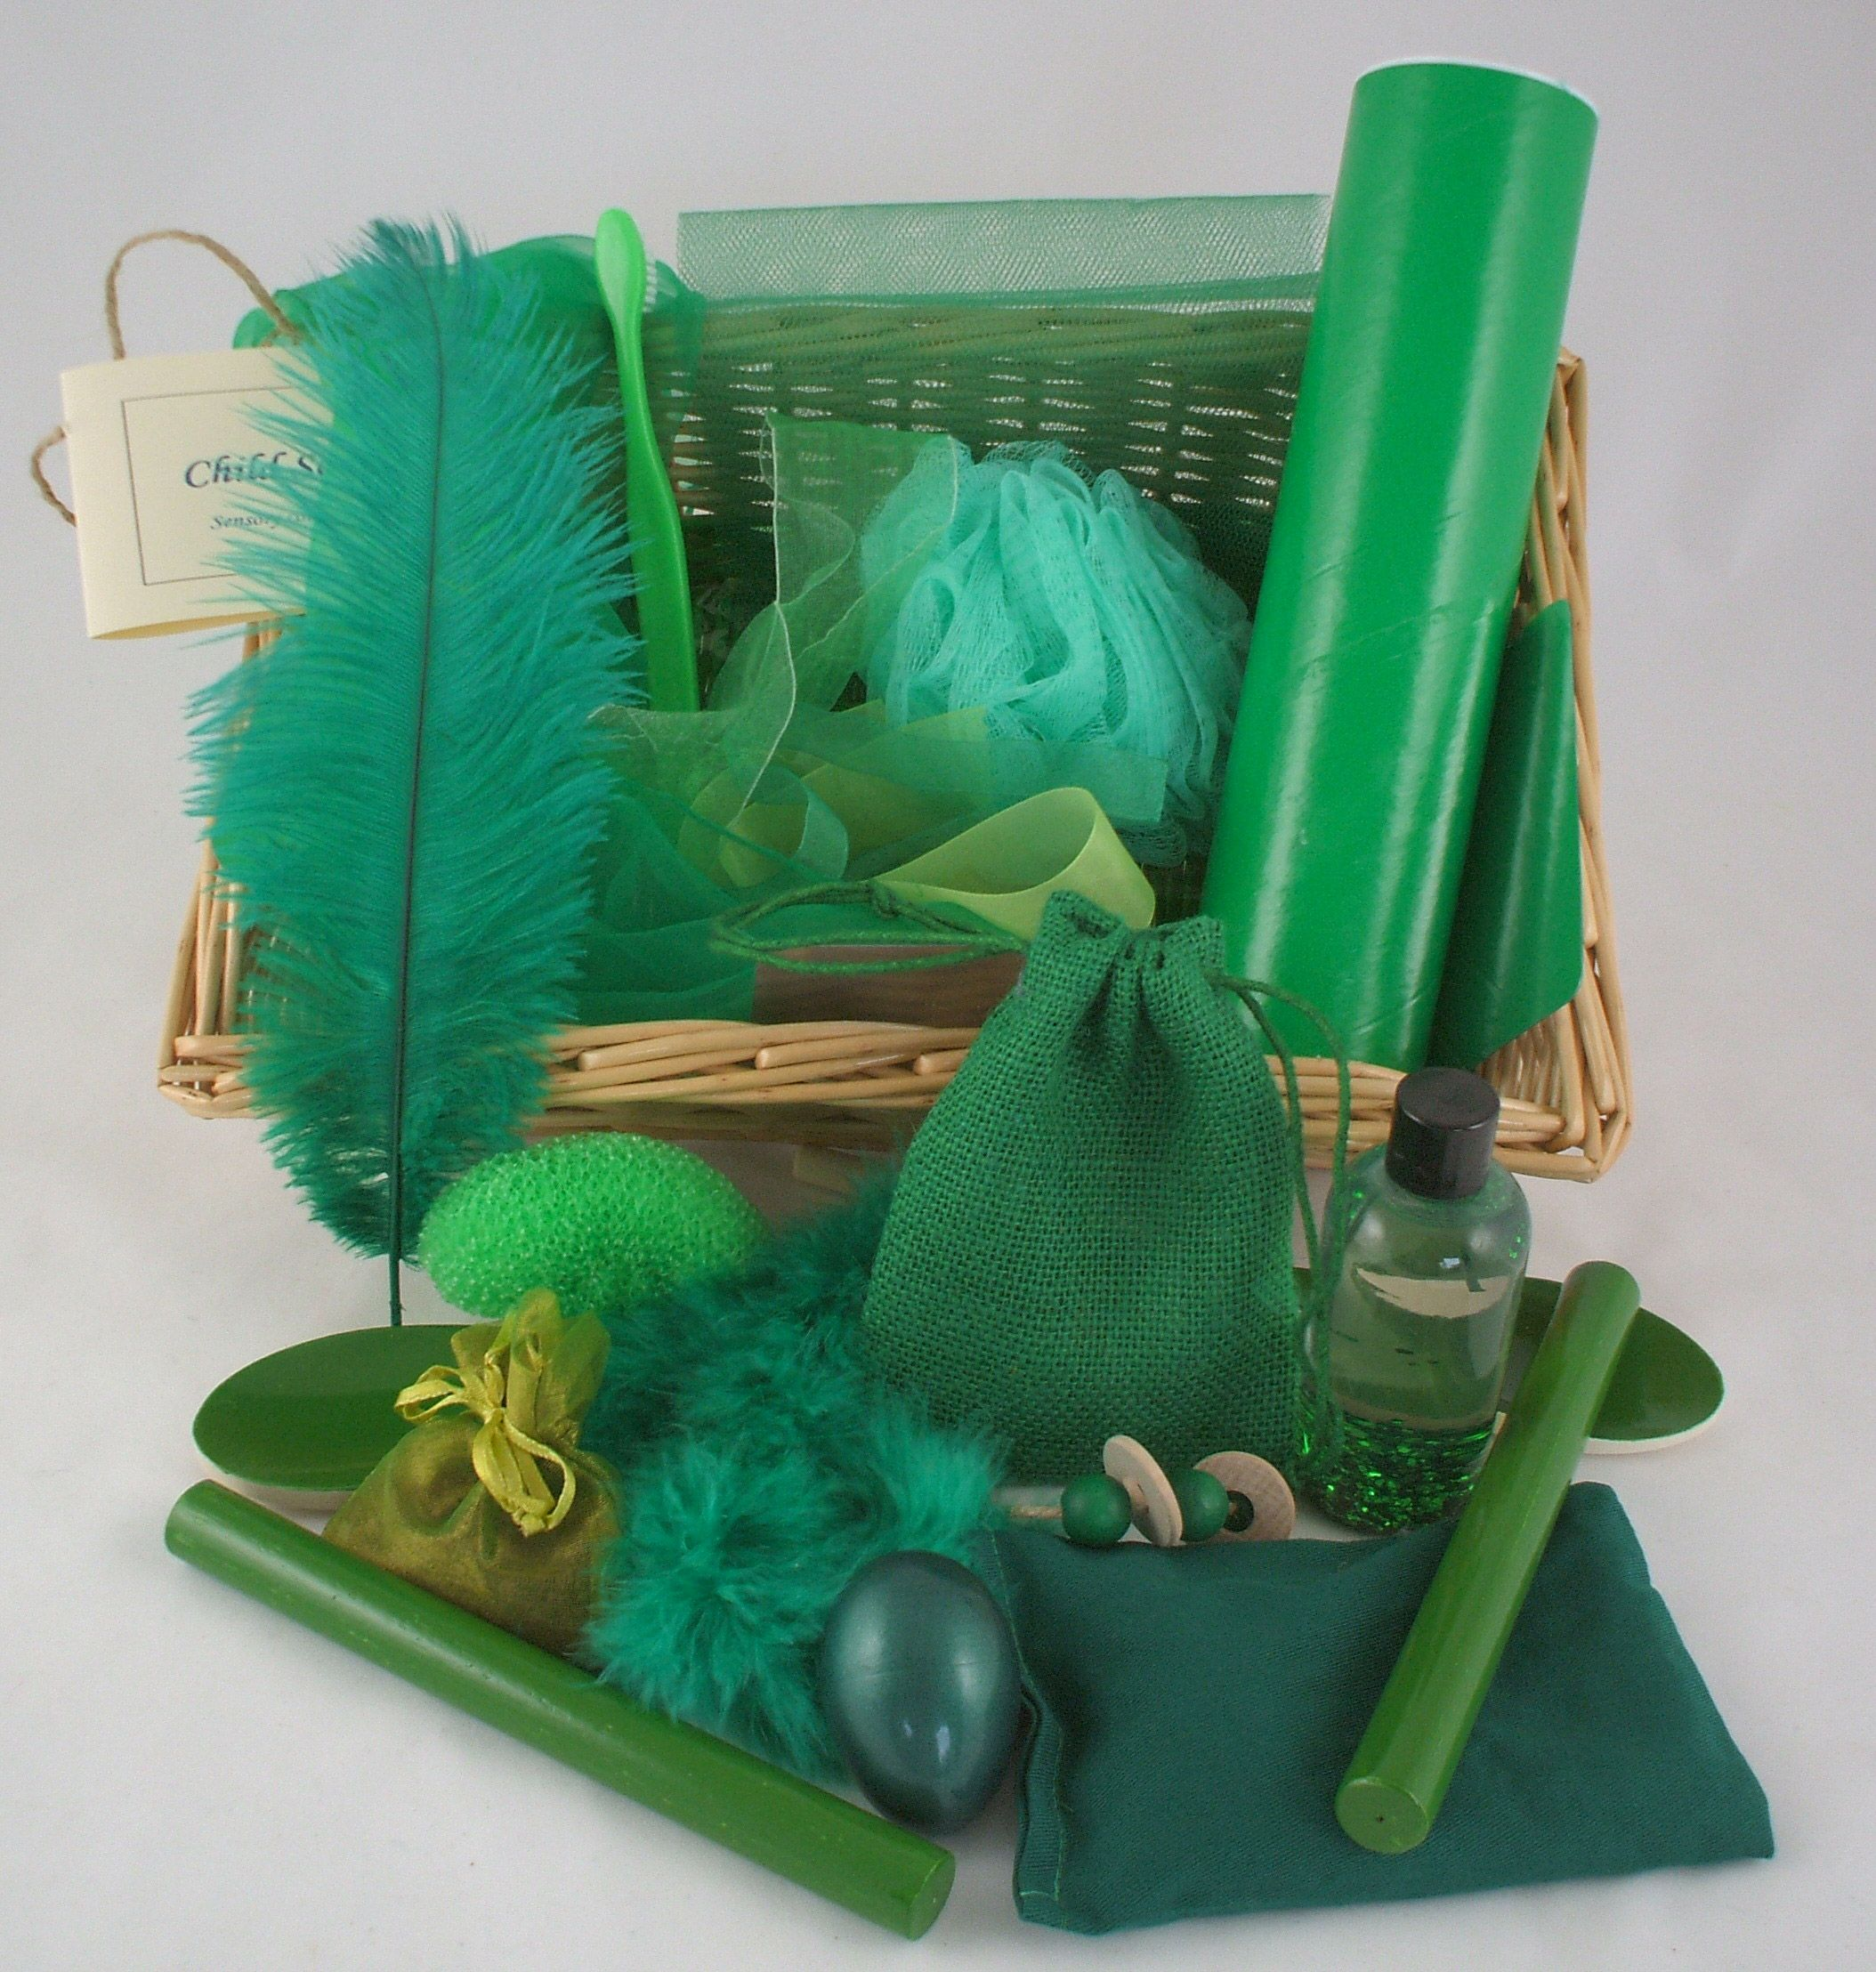 Colour Recognition Baskets | Green | Color Play | Pinterest ...